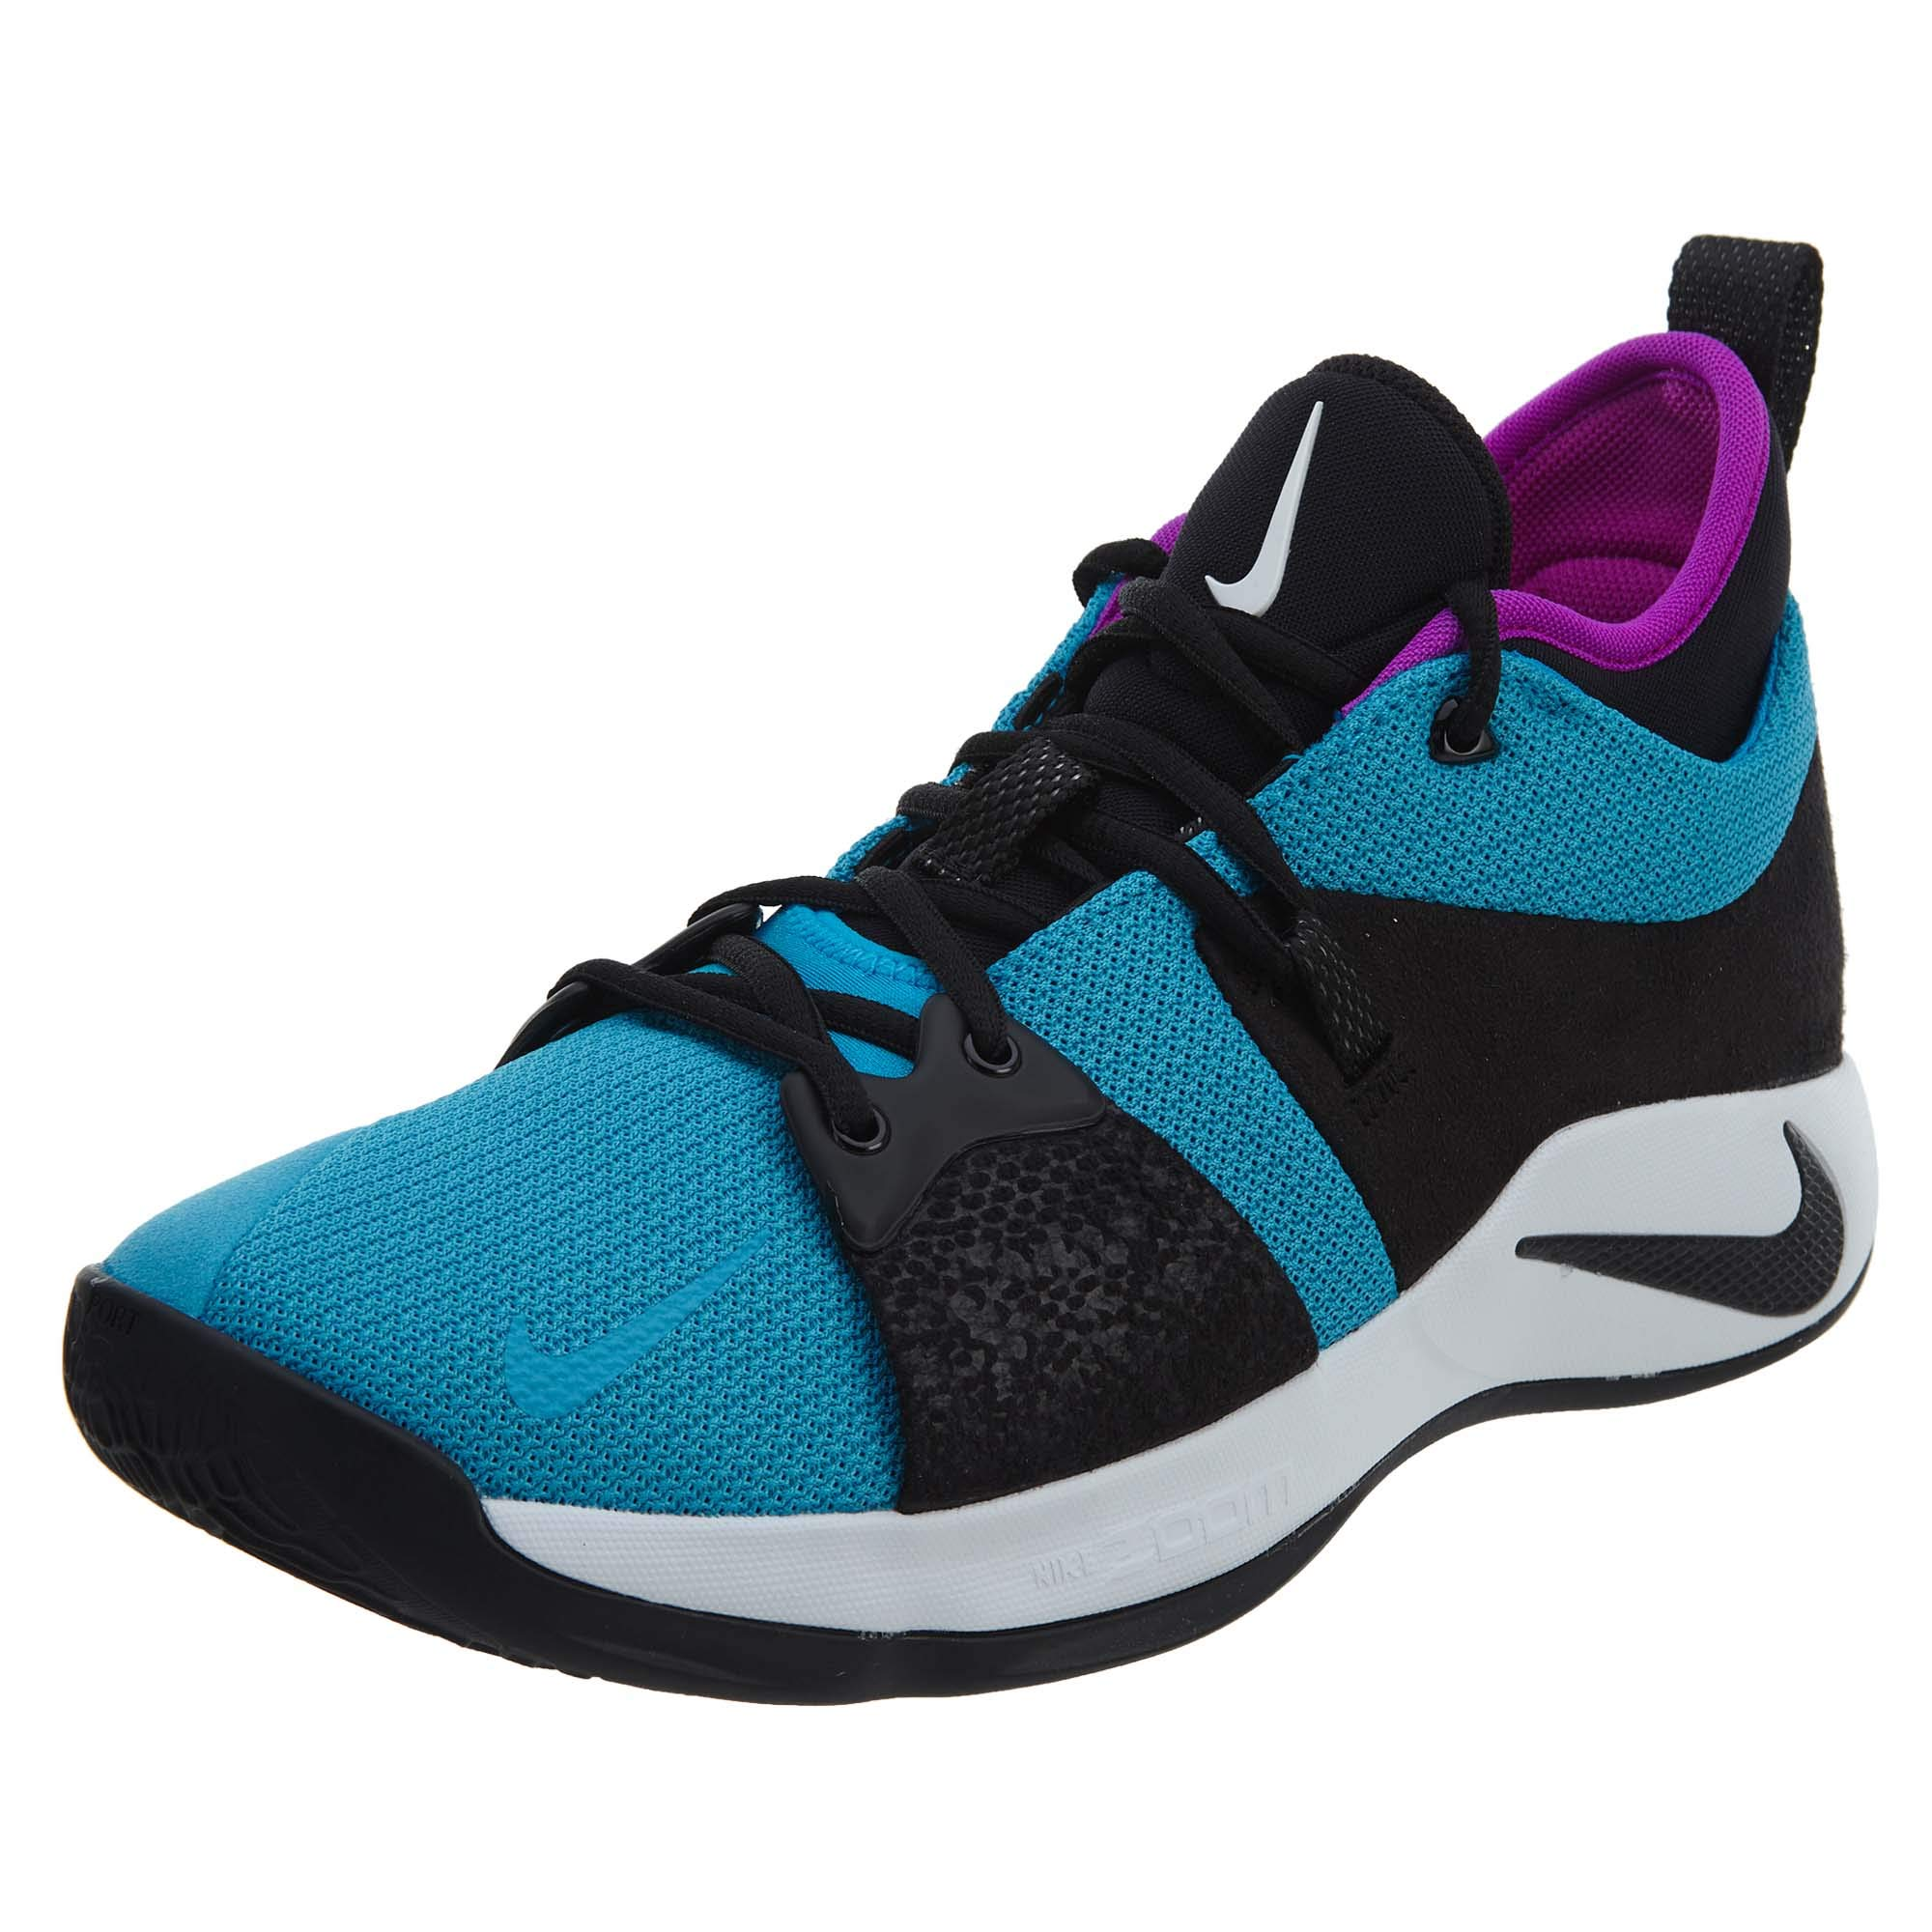 premium selection d085f 3416a Galleon - NIKE Men's PG 2 Basketball Shoe Blue Lagoon/Black ...